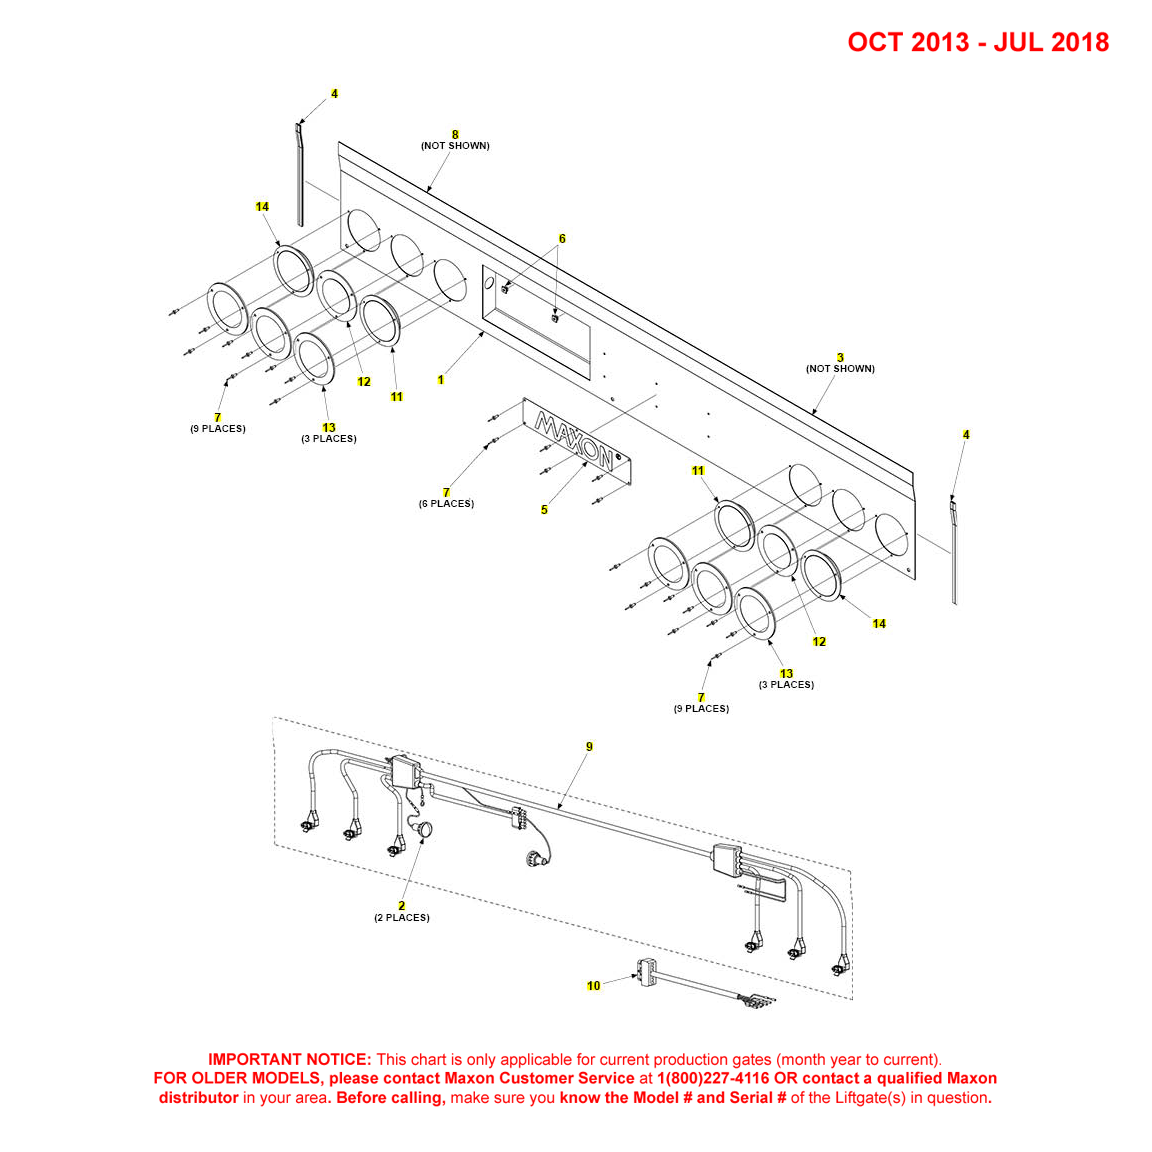 DMD (Oct 2013 - Jul 2018) Foreign Housing Cover Assembly With 6 Red/White/Yellow Lights Diagram